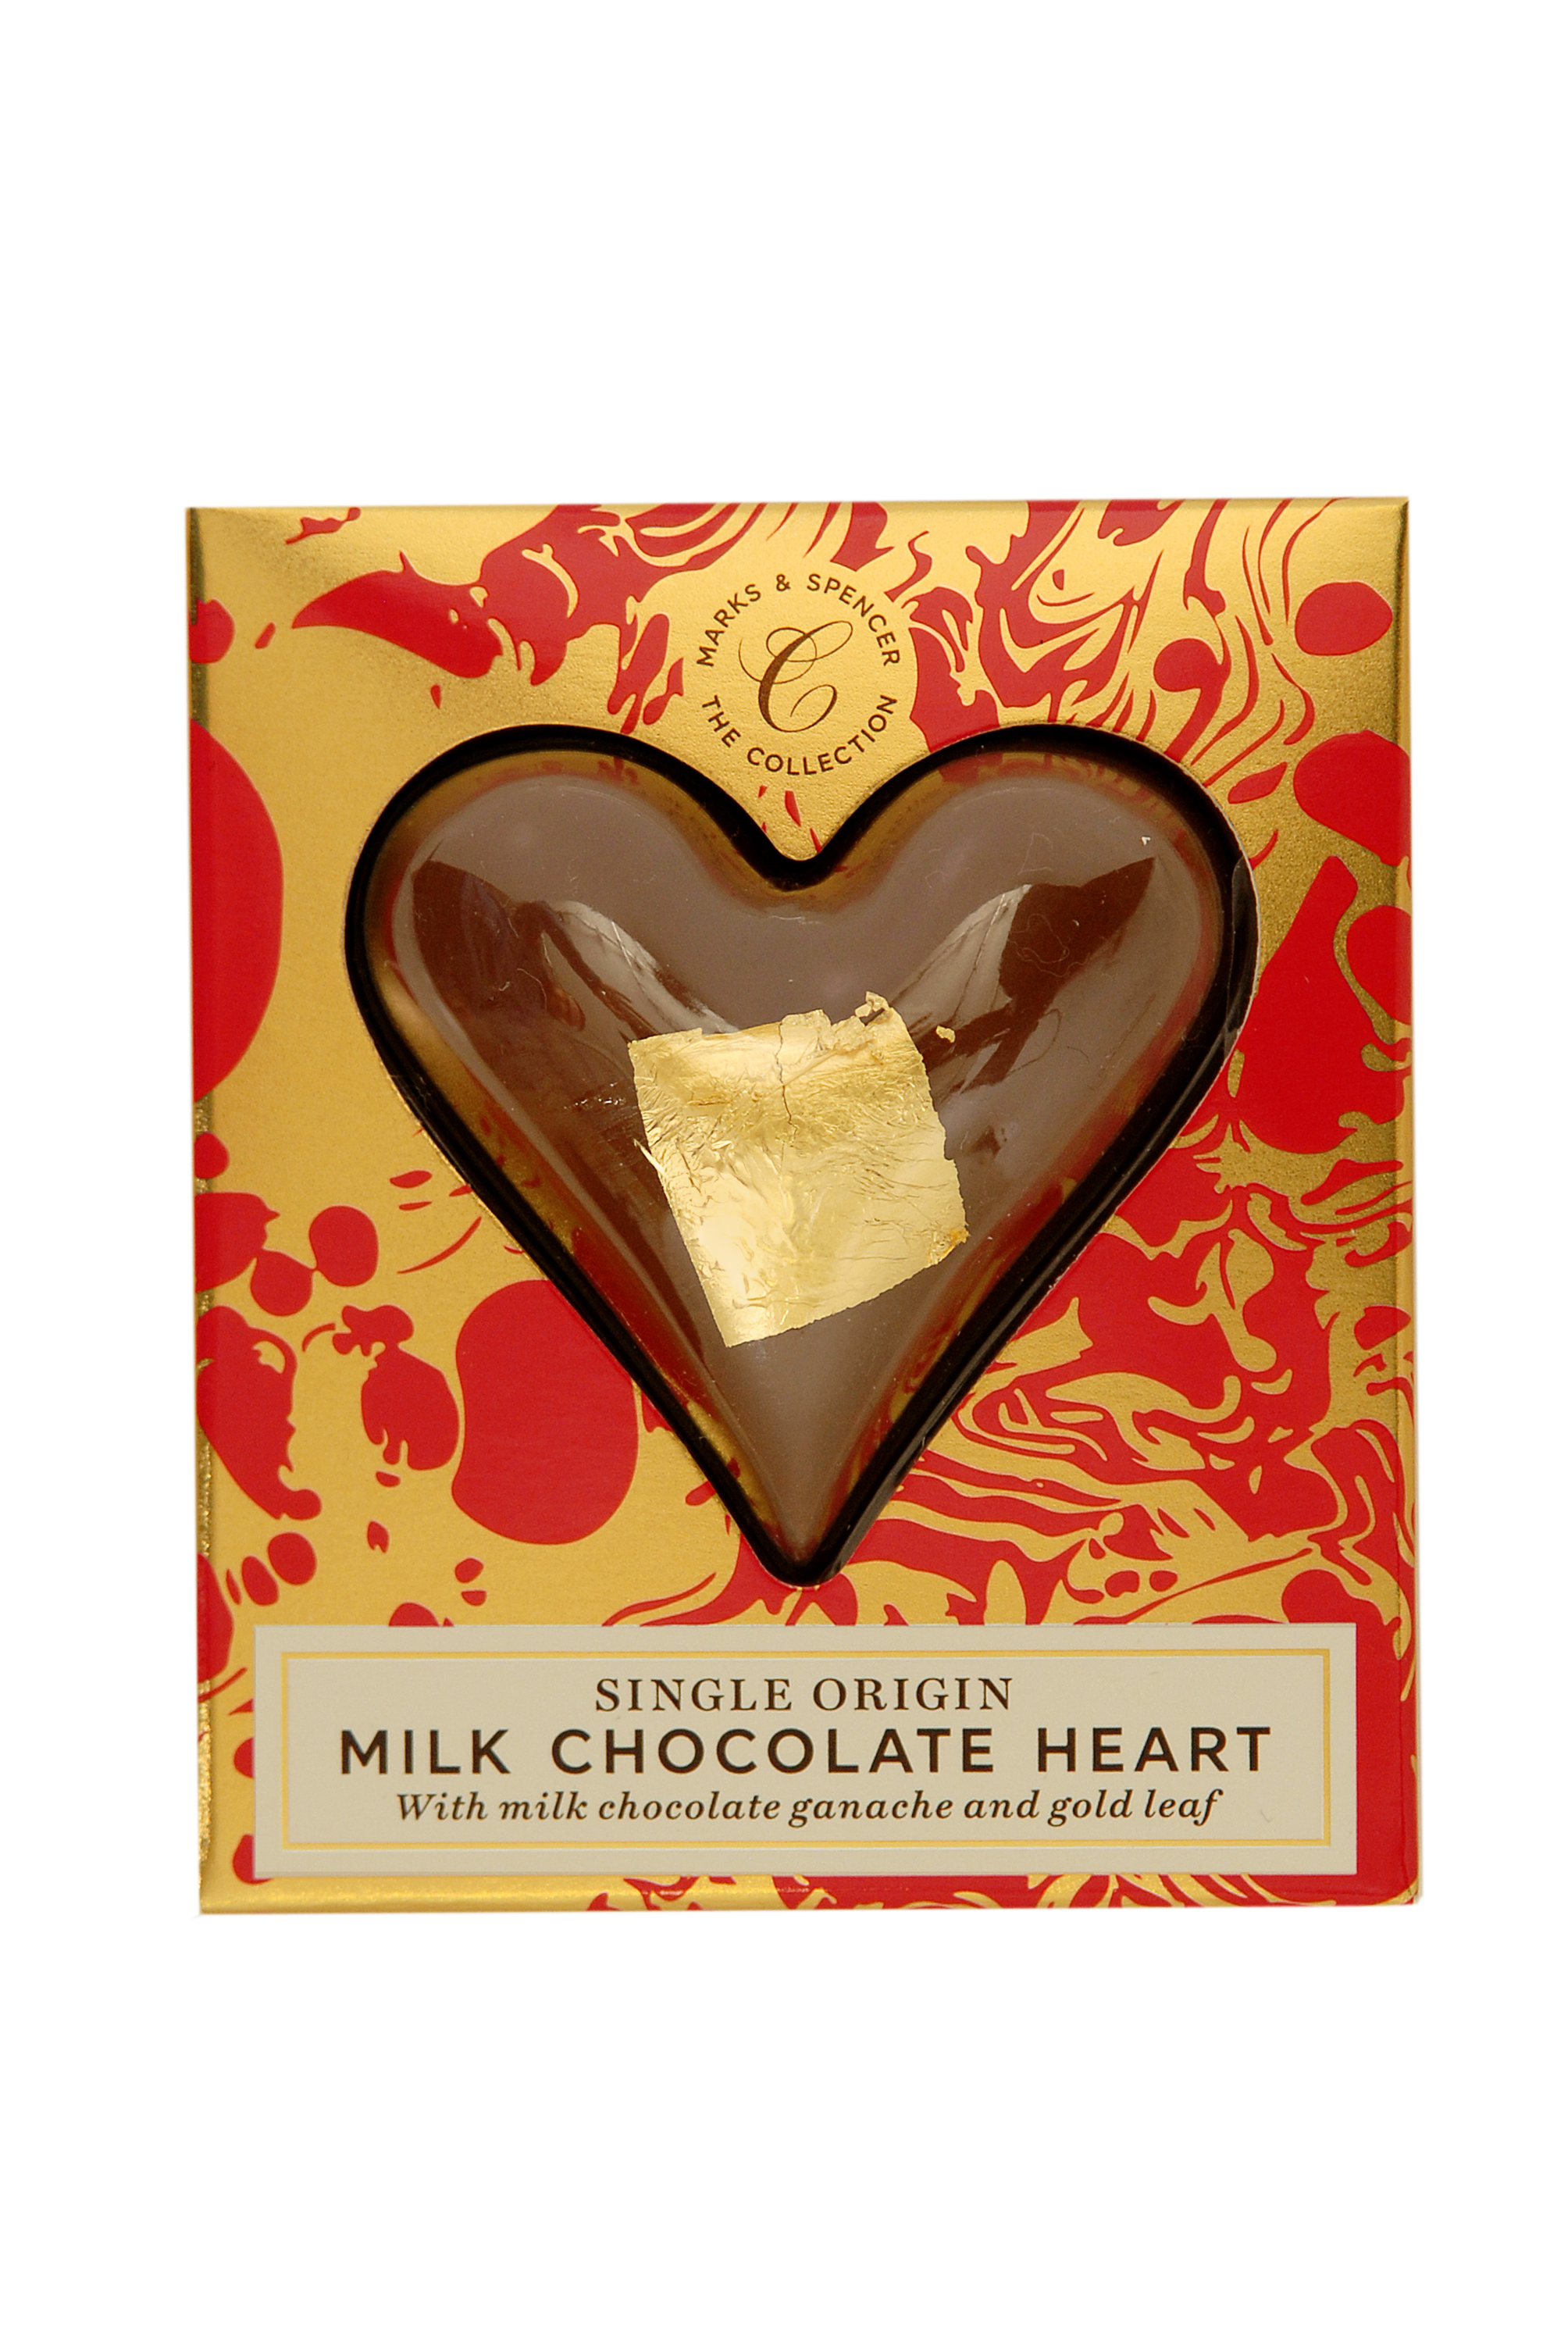 Single Origin Milk Chocolate Heart £3, 26g